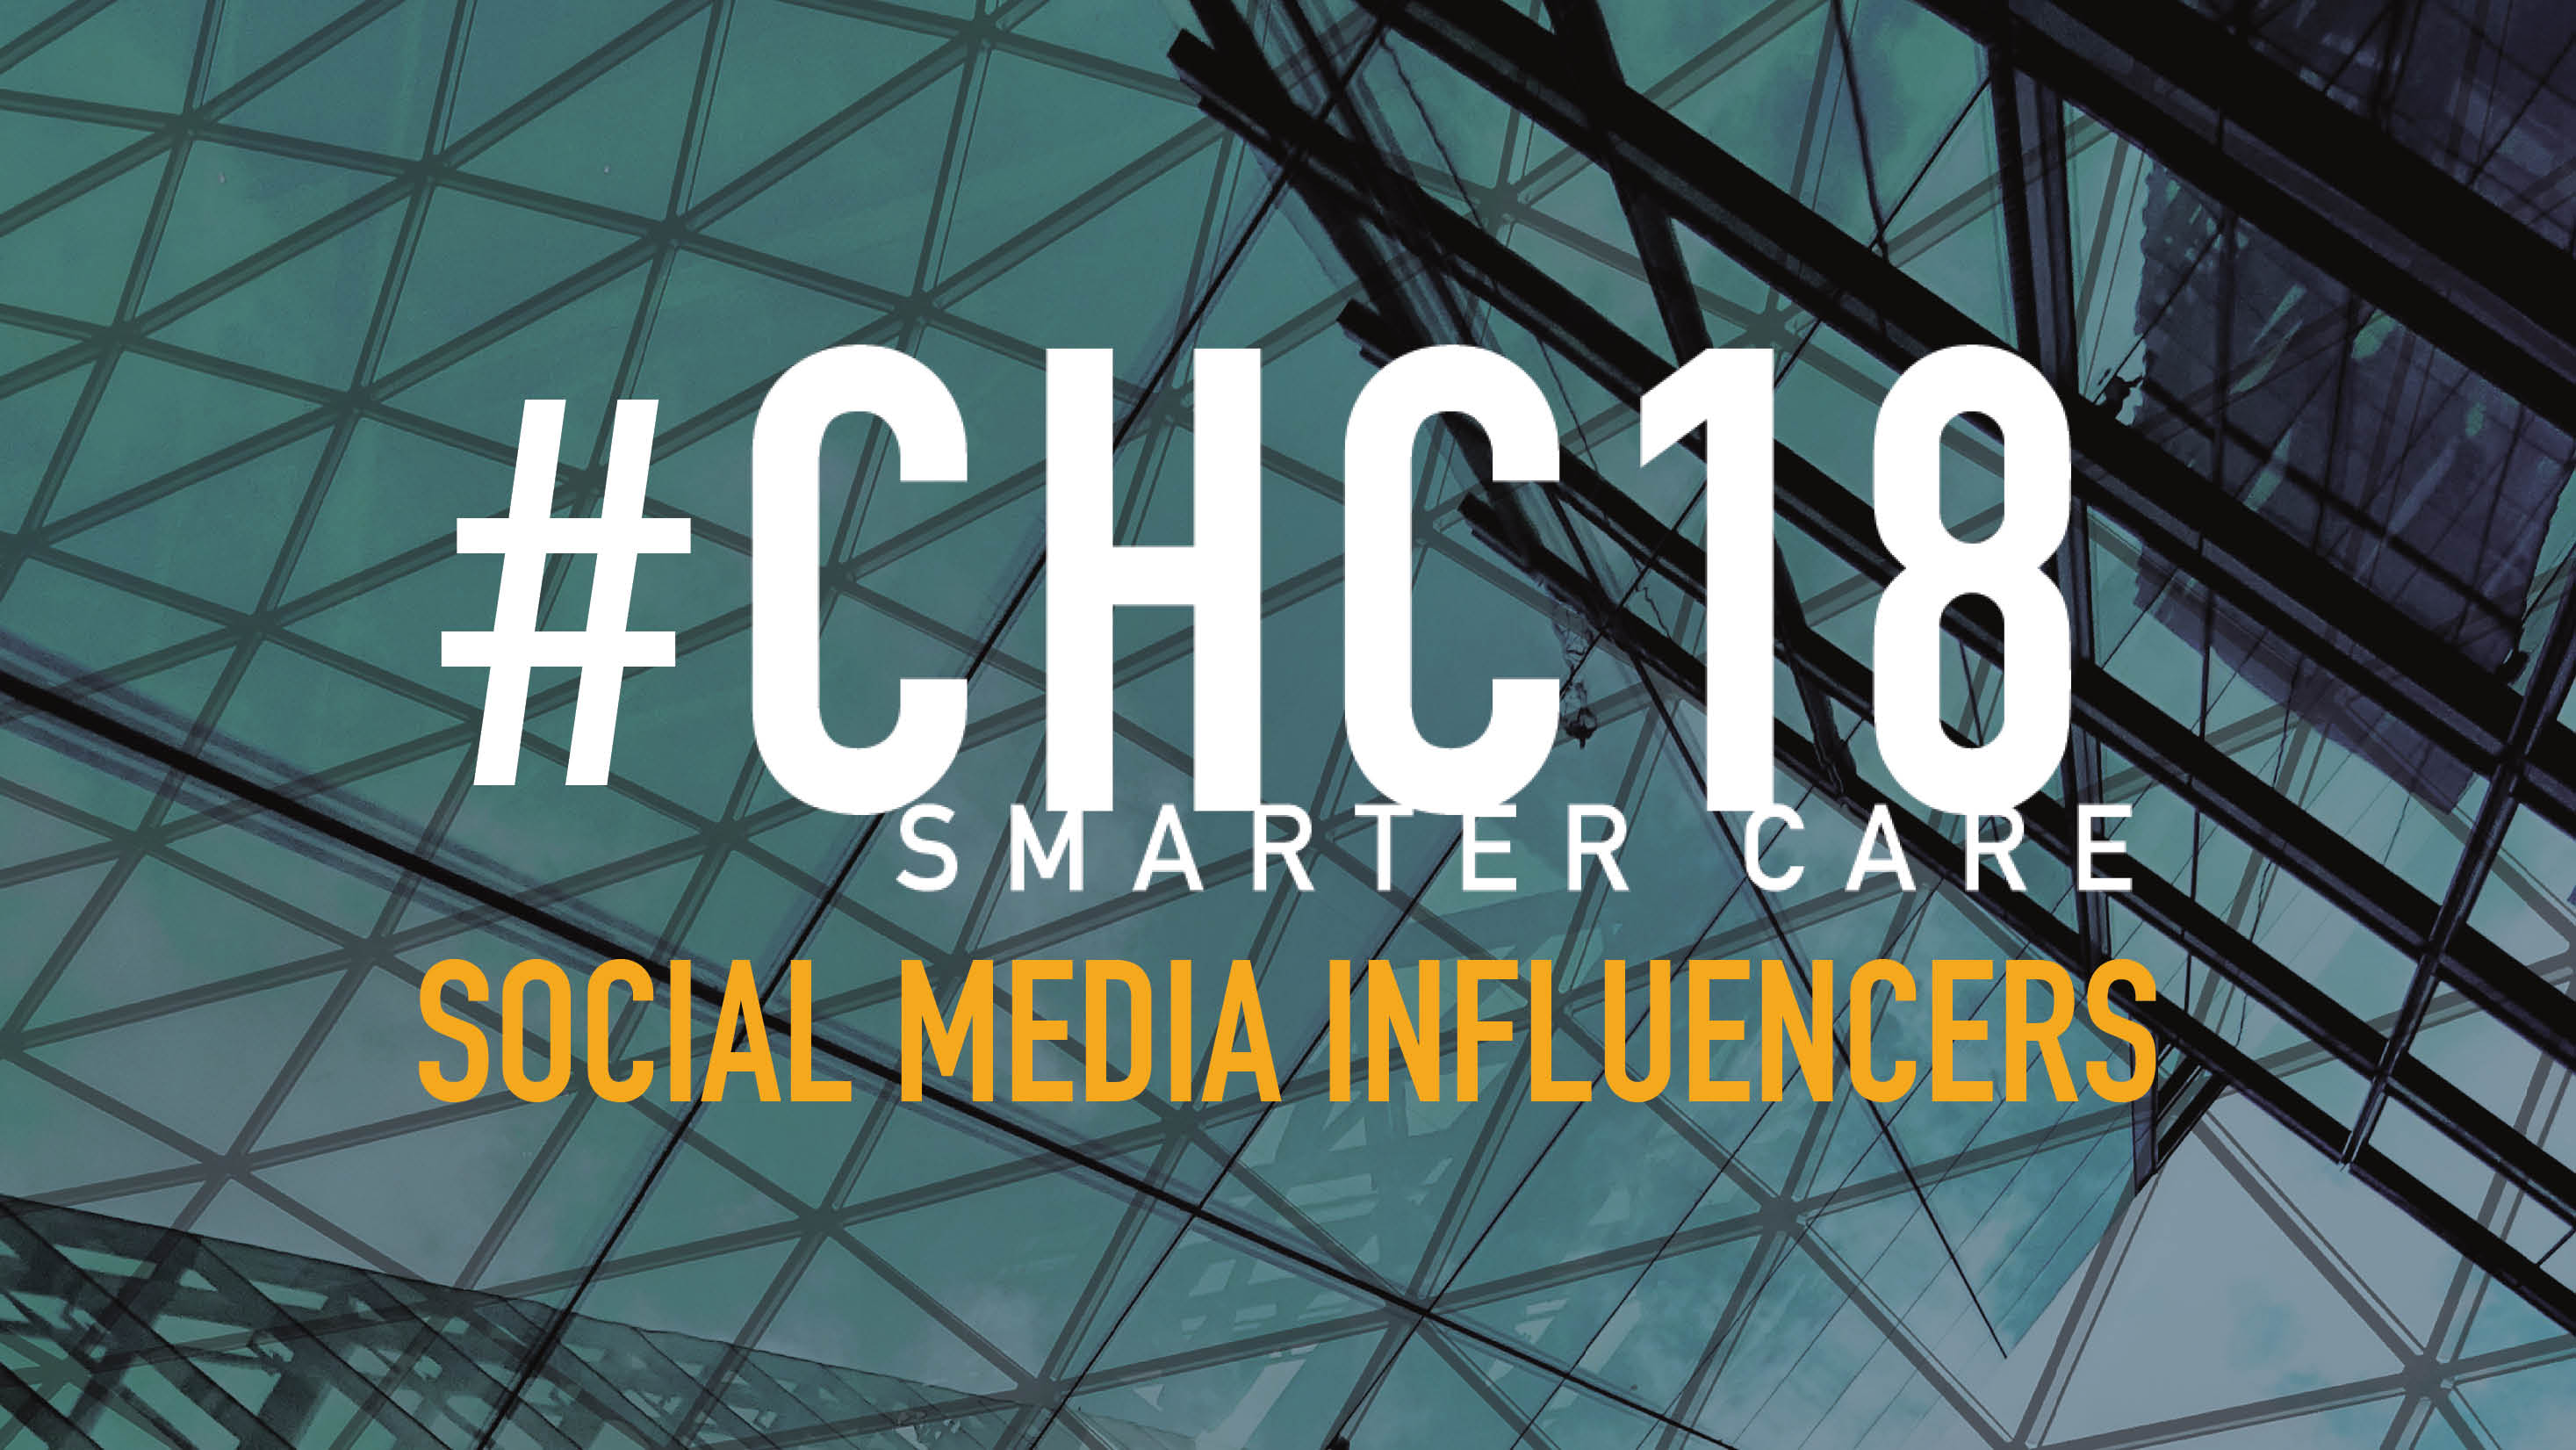 Introducing the #CHC18 Social Media Influencers